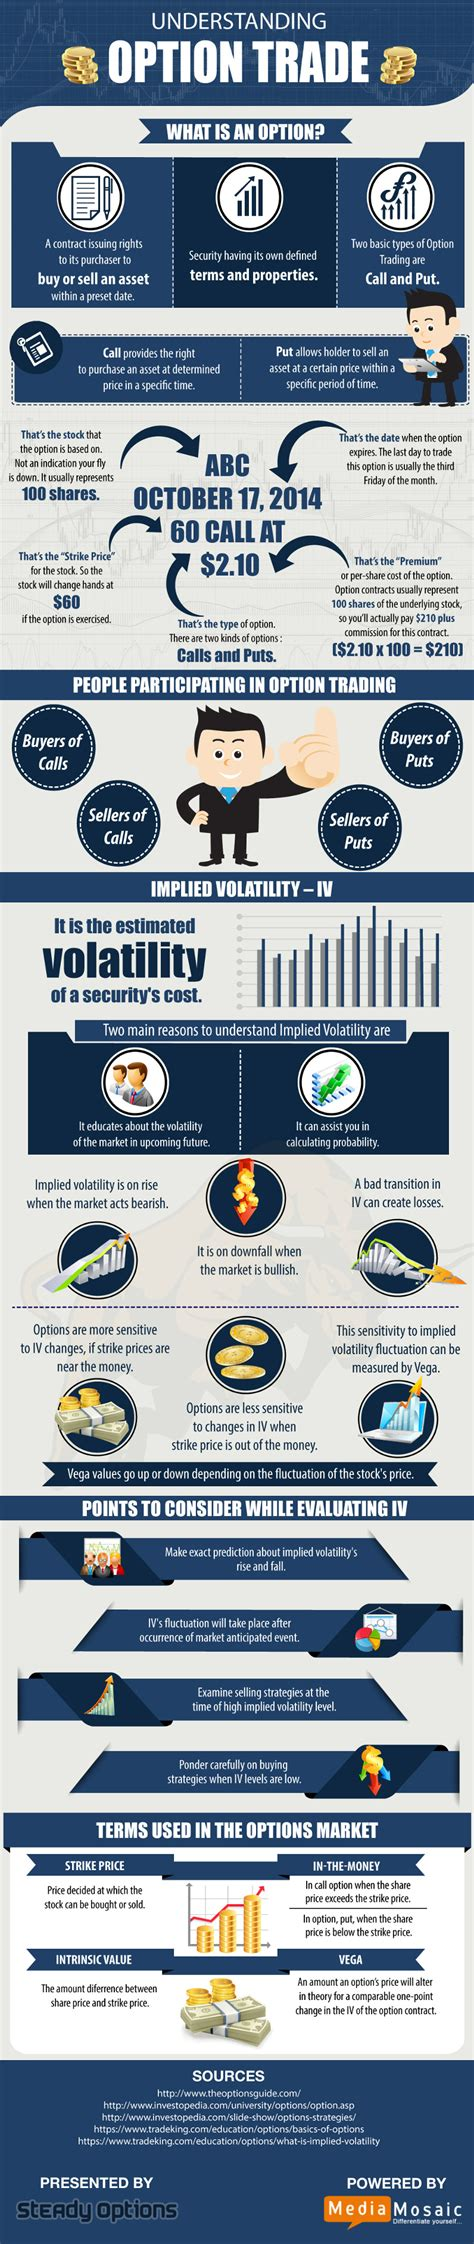 call option trading stock trading tutorial daily trader basics of trading options infographic